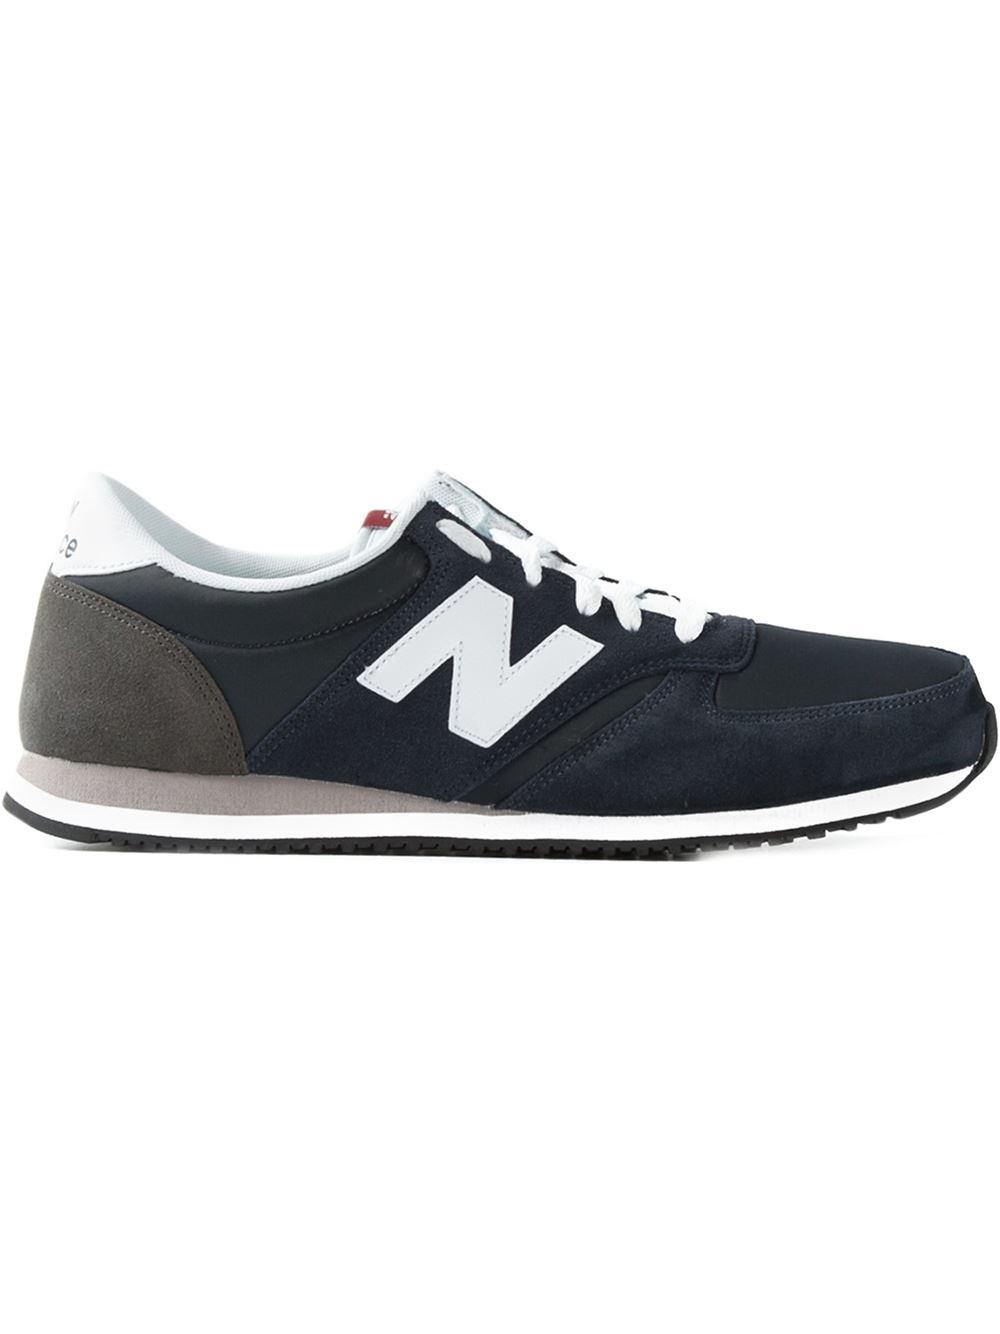 lyst new balance 70s running 420 sneakers in blue for men. Black Bedroom Furniture Sets. Home Design Ideas